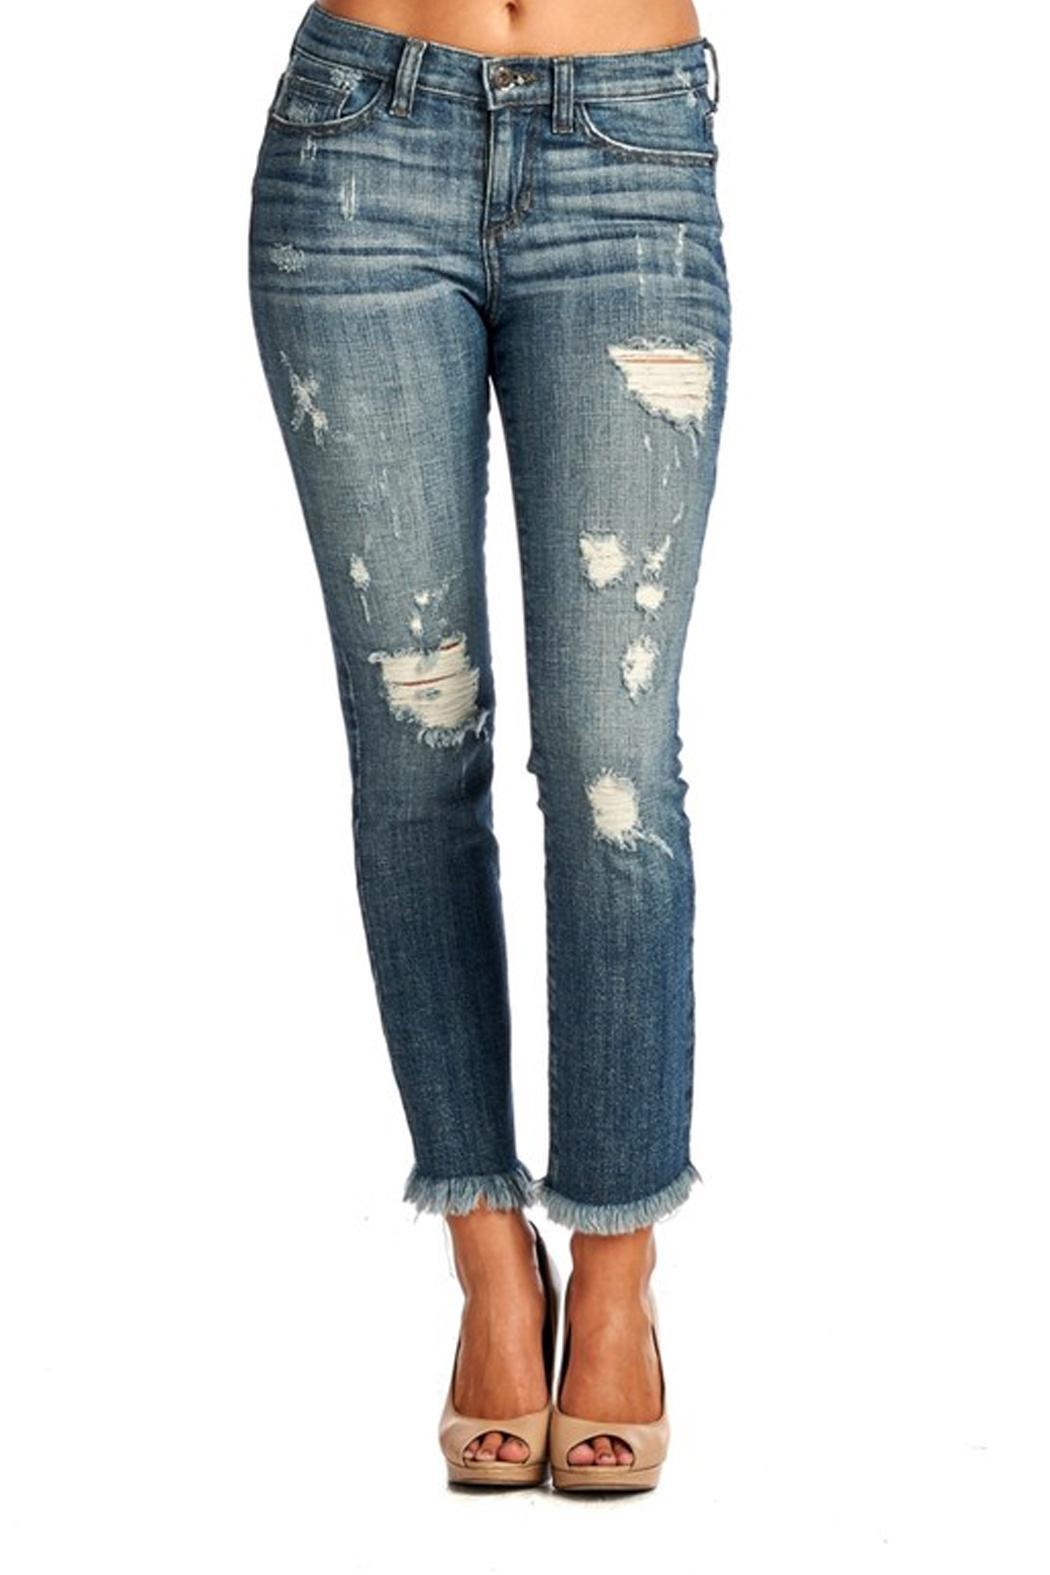 Sneak Peek Distressed Frayed Jeans from Texas by Pickles ...